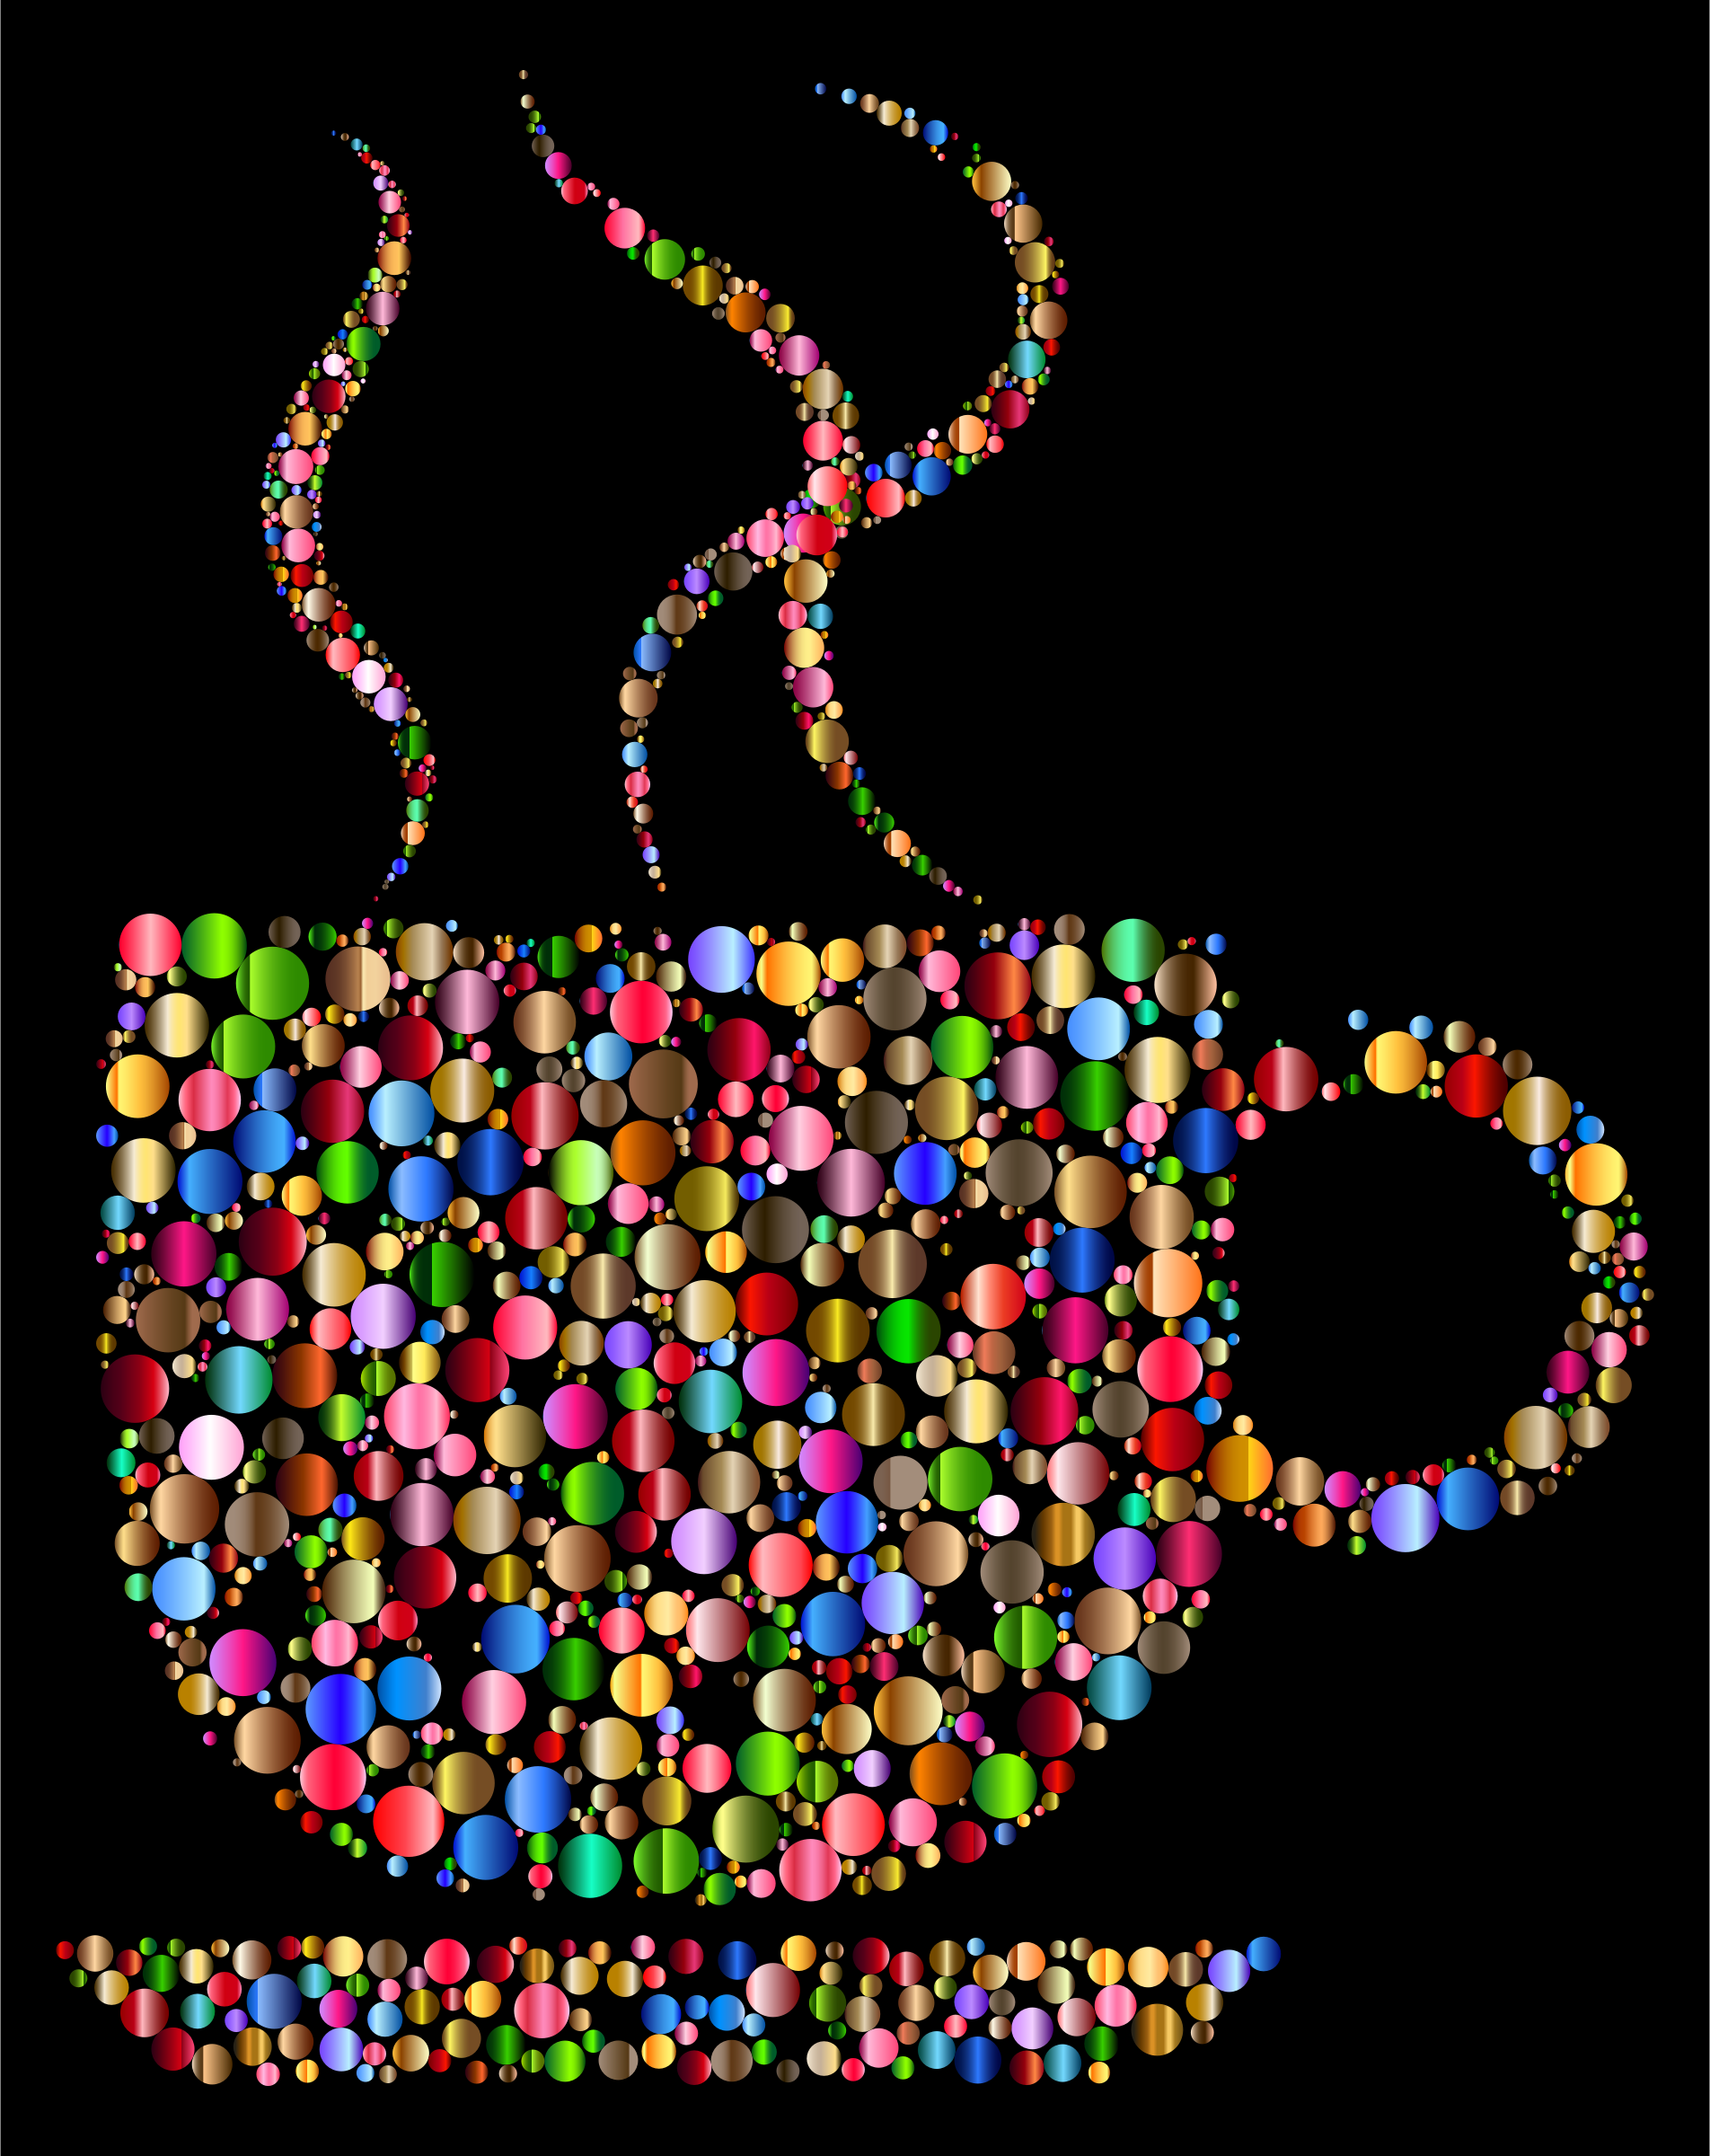 Colorful Coffee Circles 3 With Black Background by GDJ